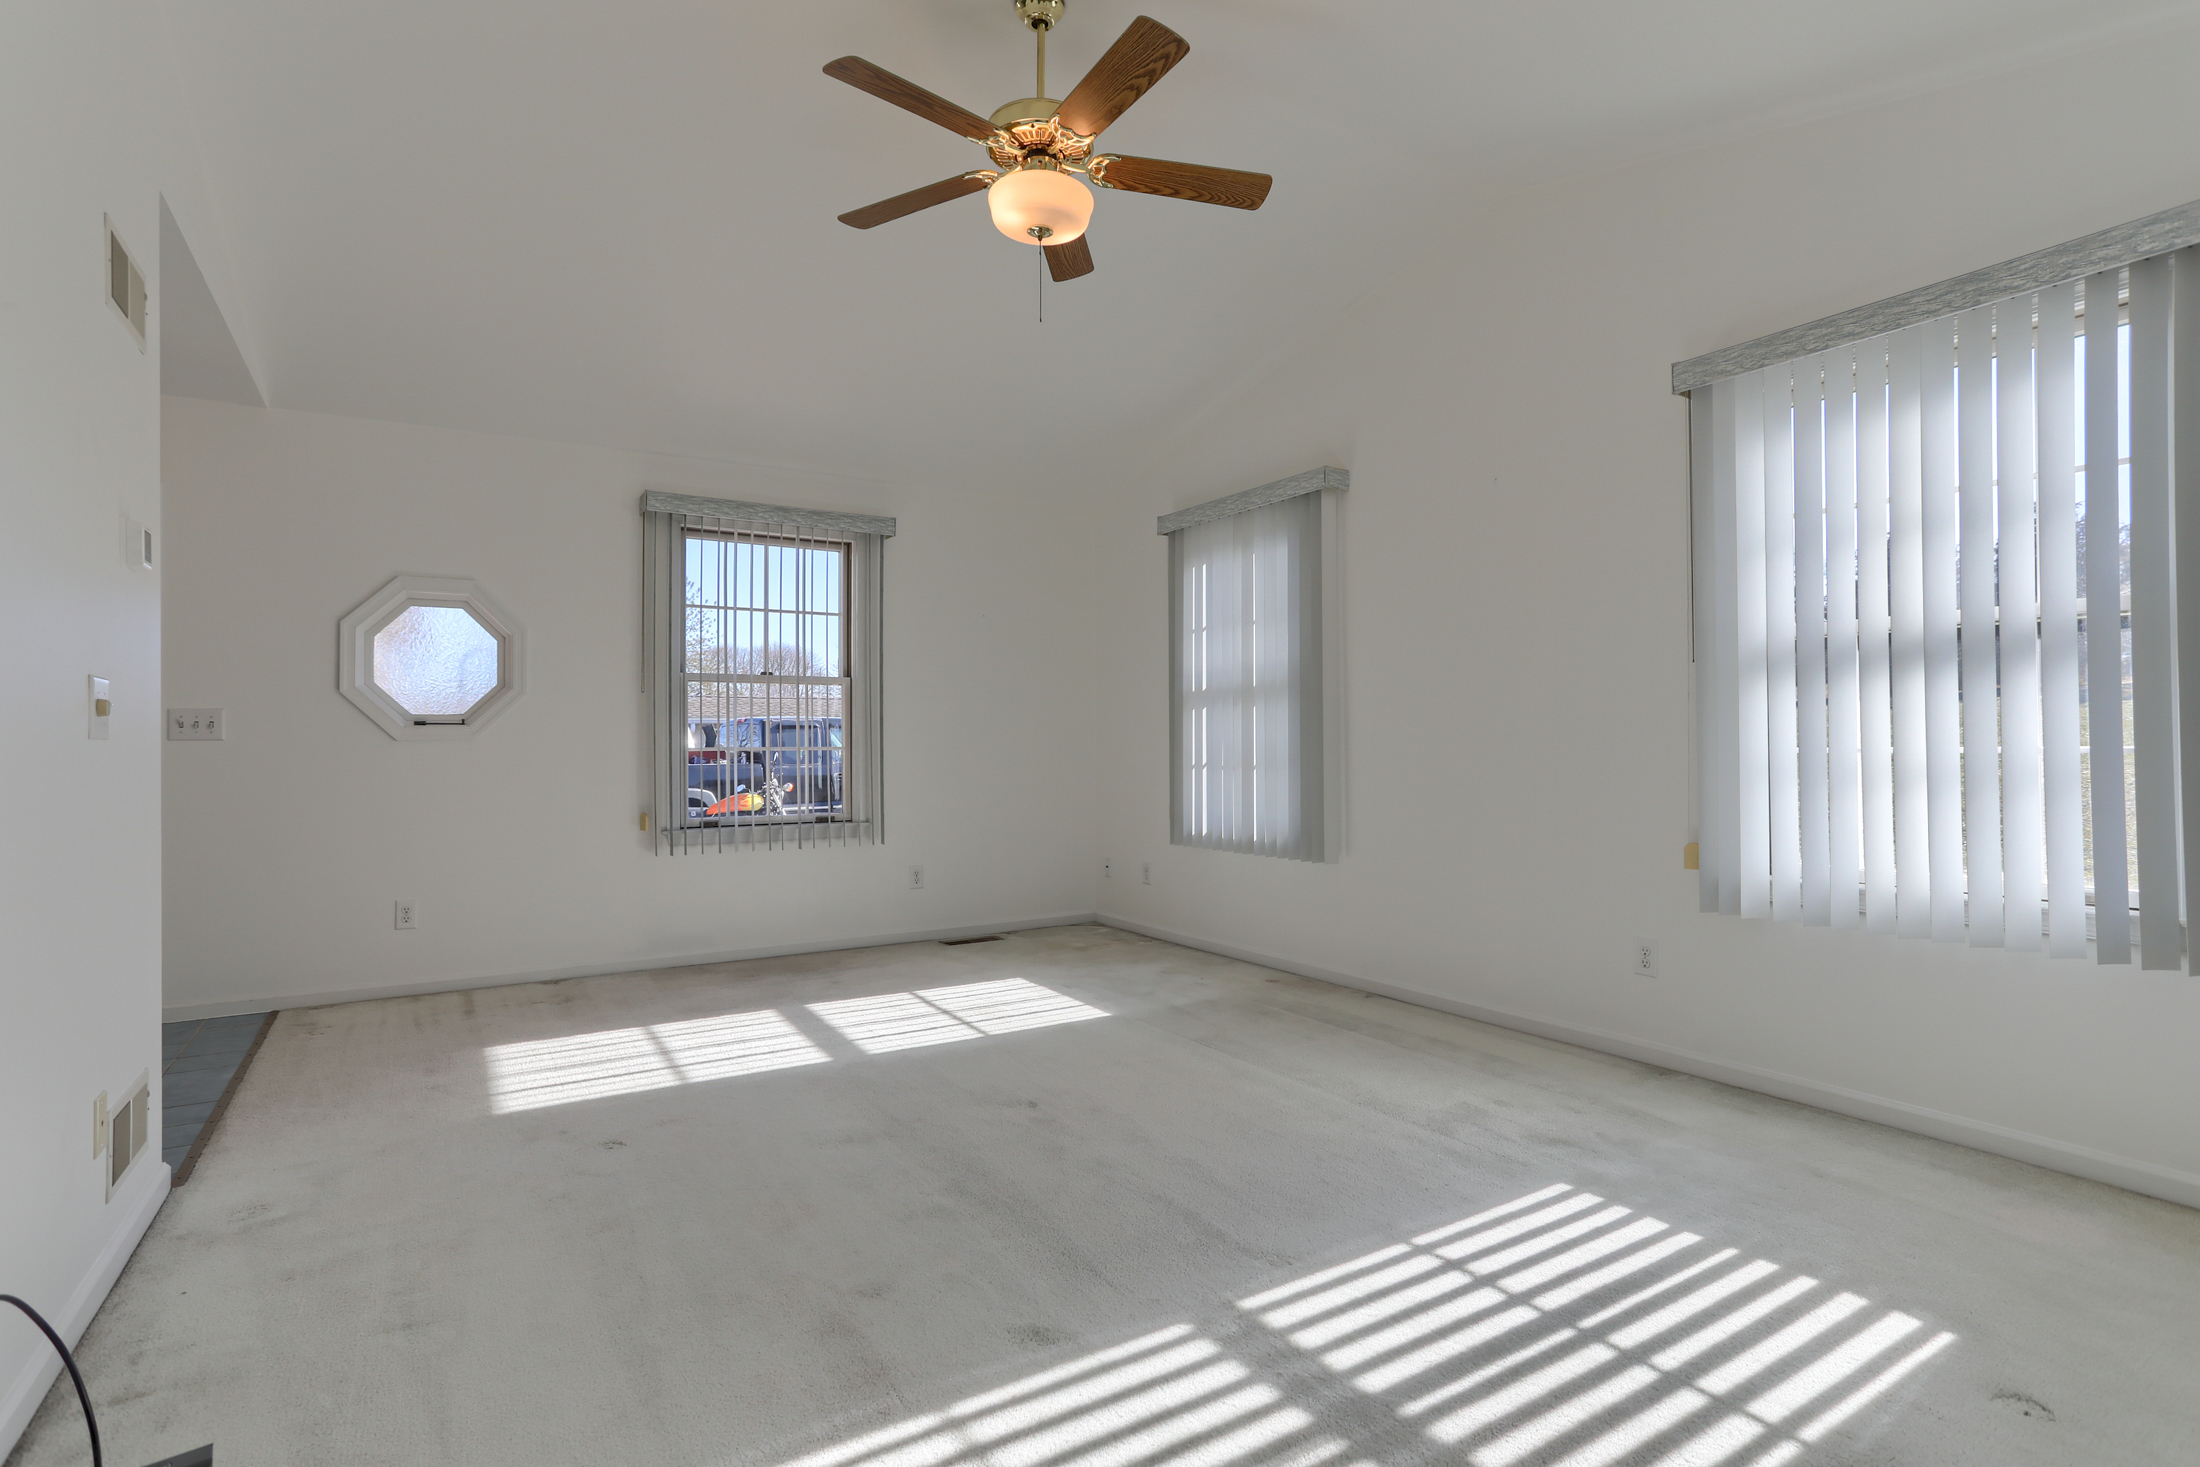 26 W. Strack Drive - Front Room2